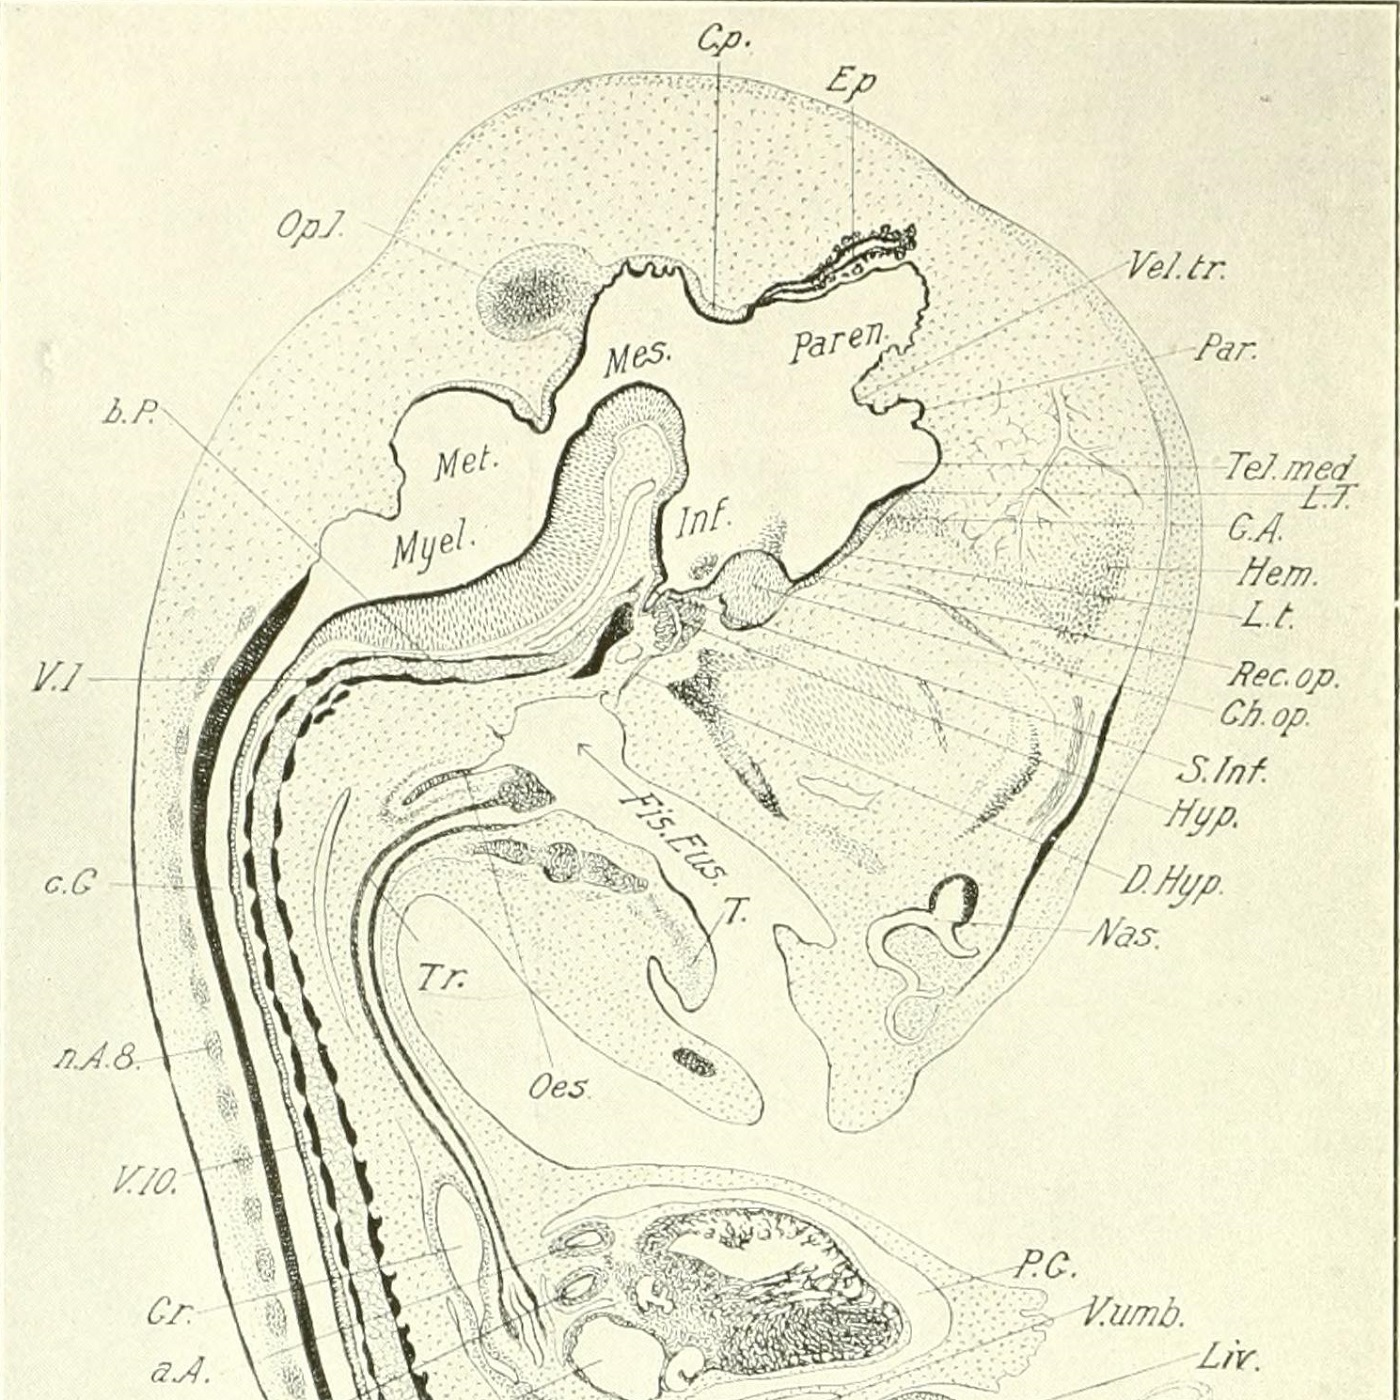 The_development_of_the_chick;_an_introduction_to_embryology_(1908)_(14725950606).jpg